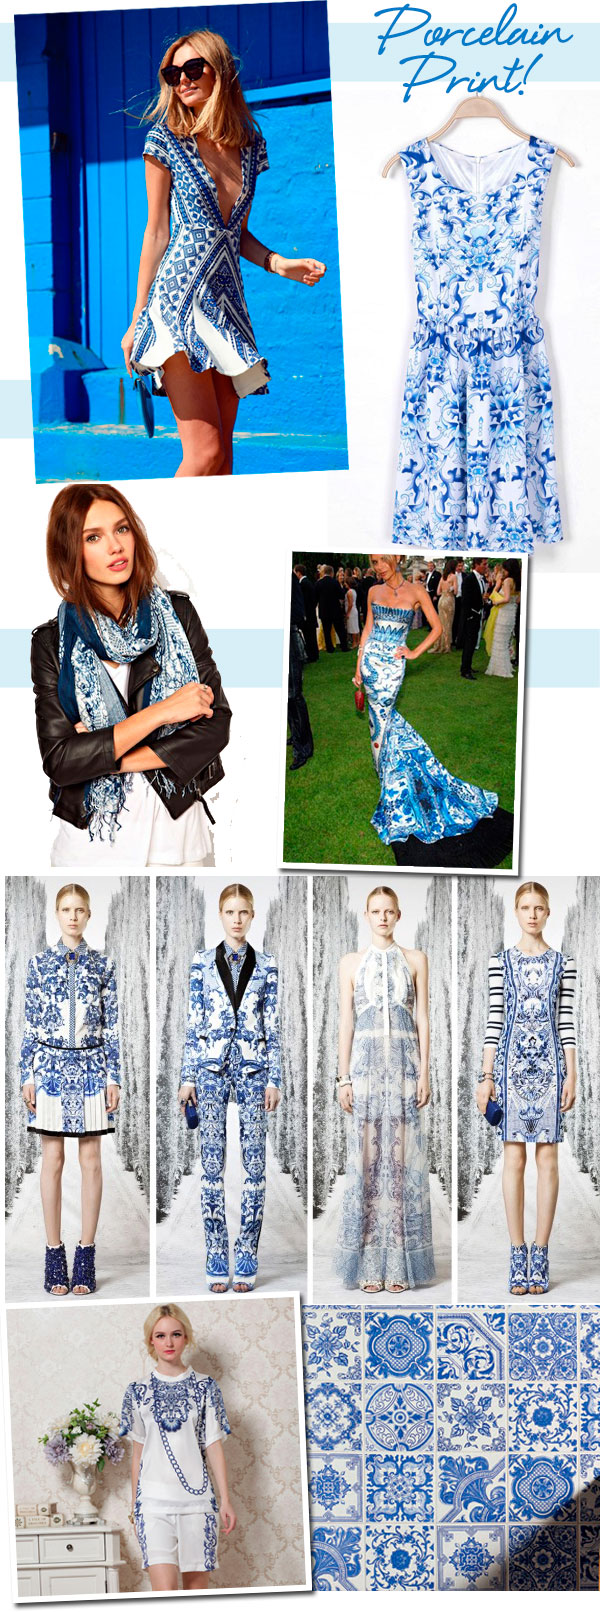 porcelain-print-moda-estampa-porcelana-fashion